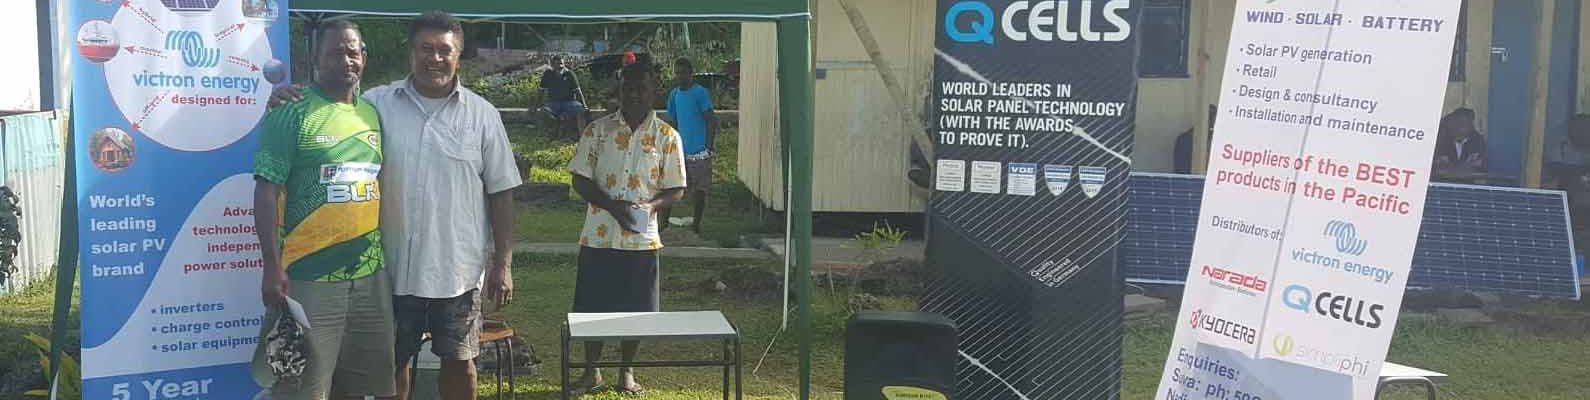 Solar Fiji Rugby 7s Tournament in Moturiki